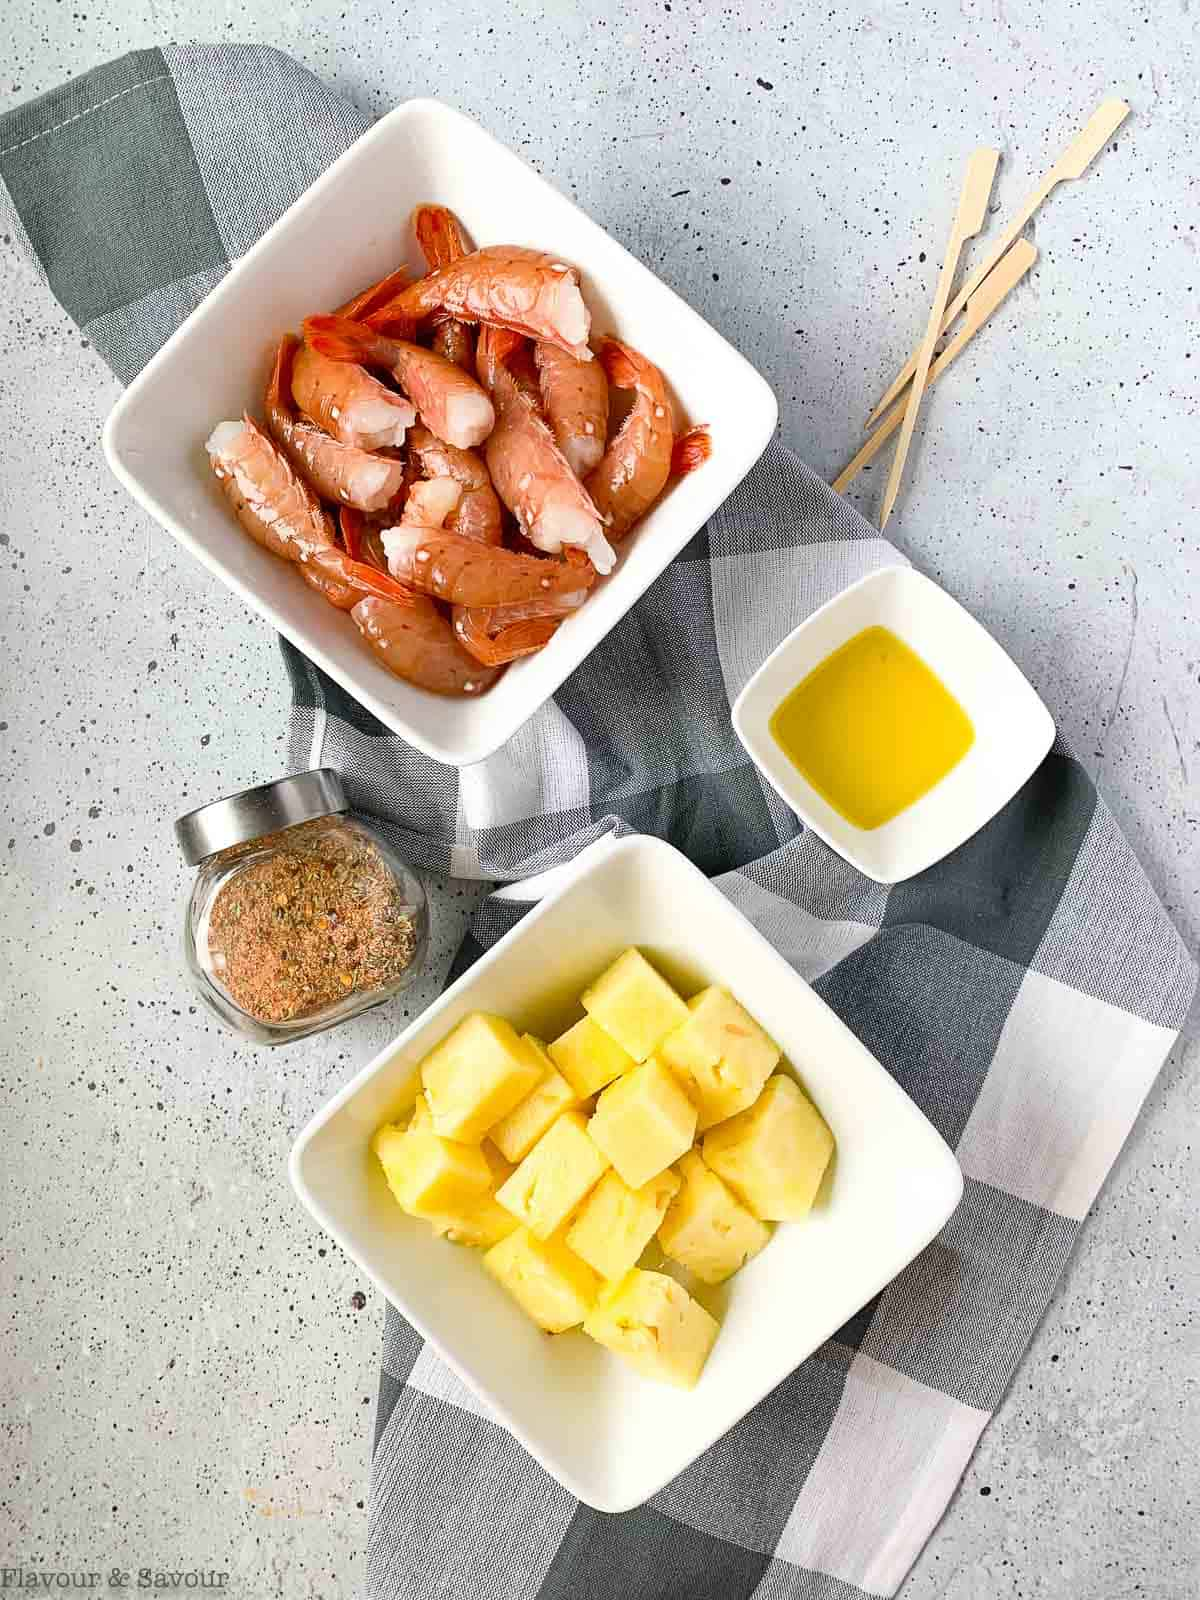 Ingredients for Grilled Prawn Kabobs with Pineapple